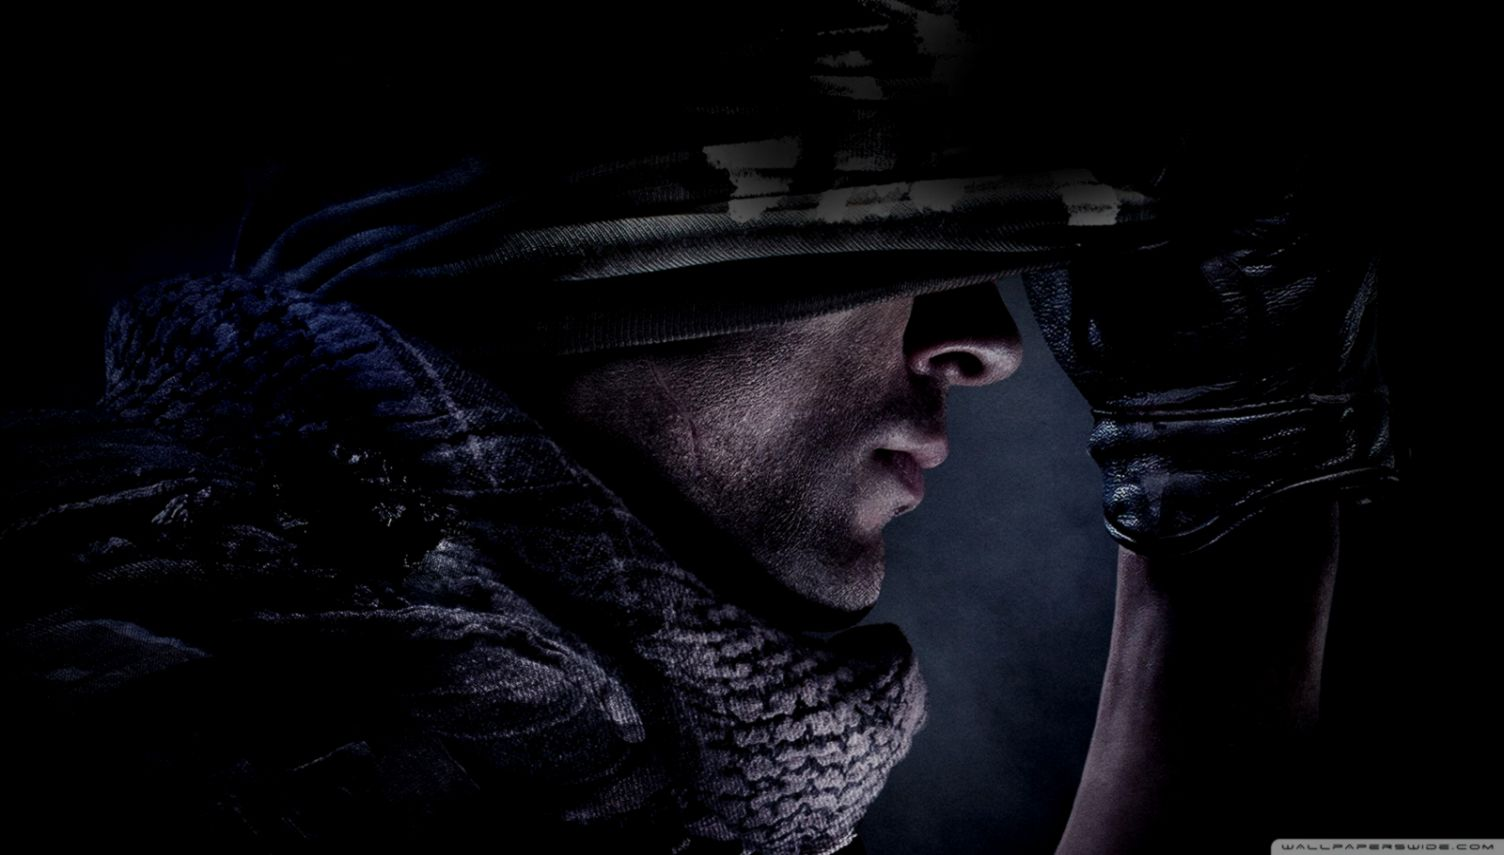 Wallpapers Call Of Duty Ghosts Posted By Ethan Walker